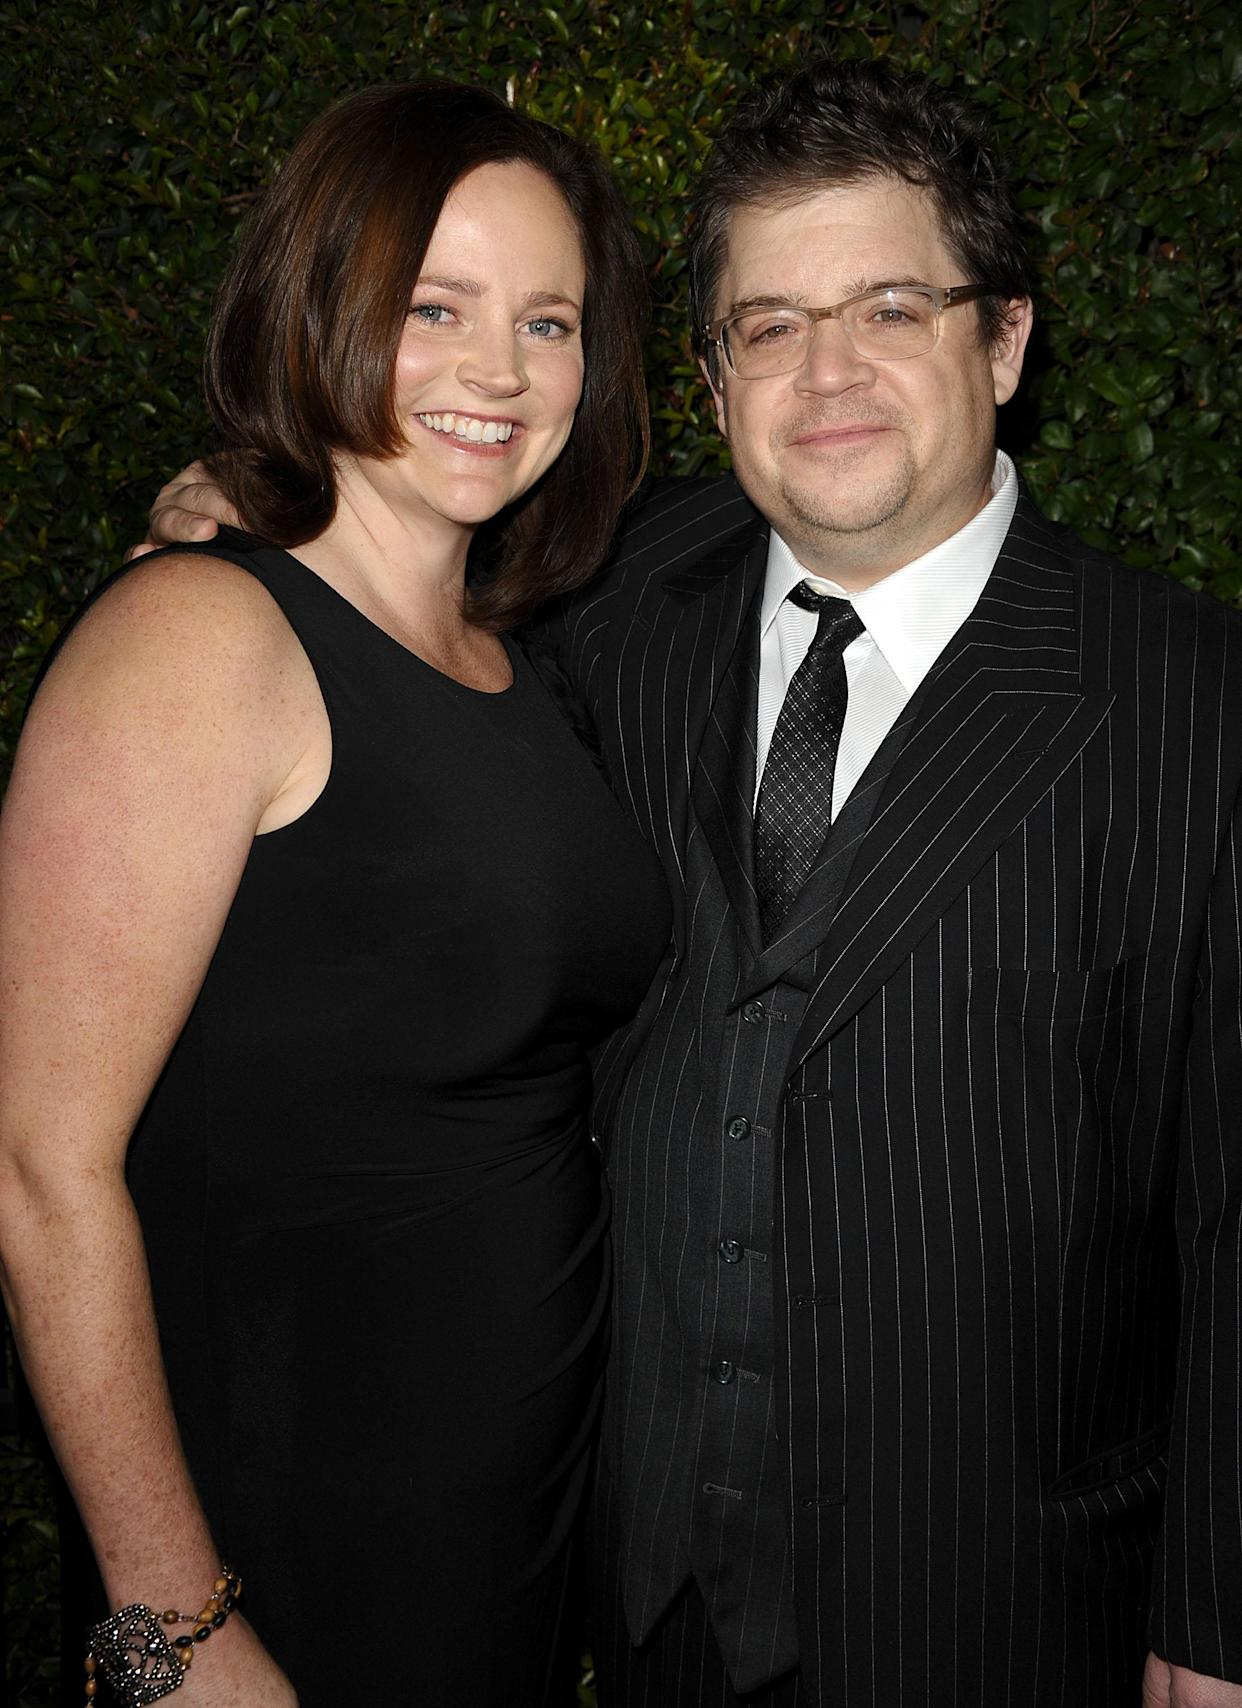 Michelle McNamara and Patton Oswalt attend the <em>Young Adult</em> Los Angeles premiere in December 2011. (Photo: Getty Images)